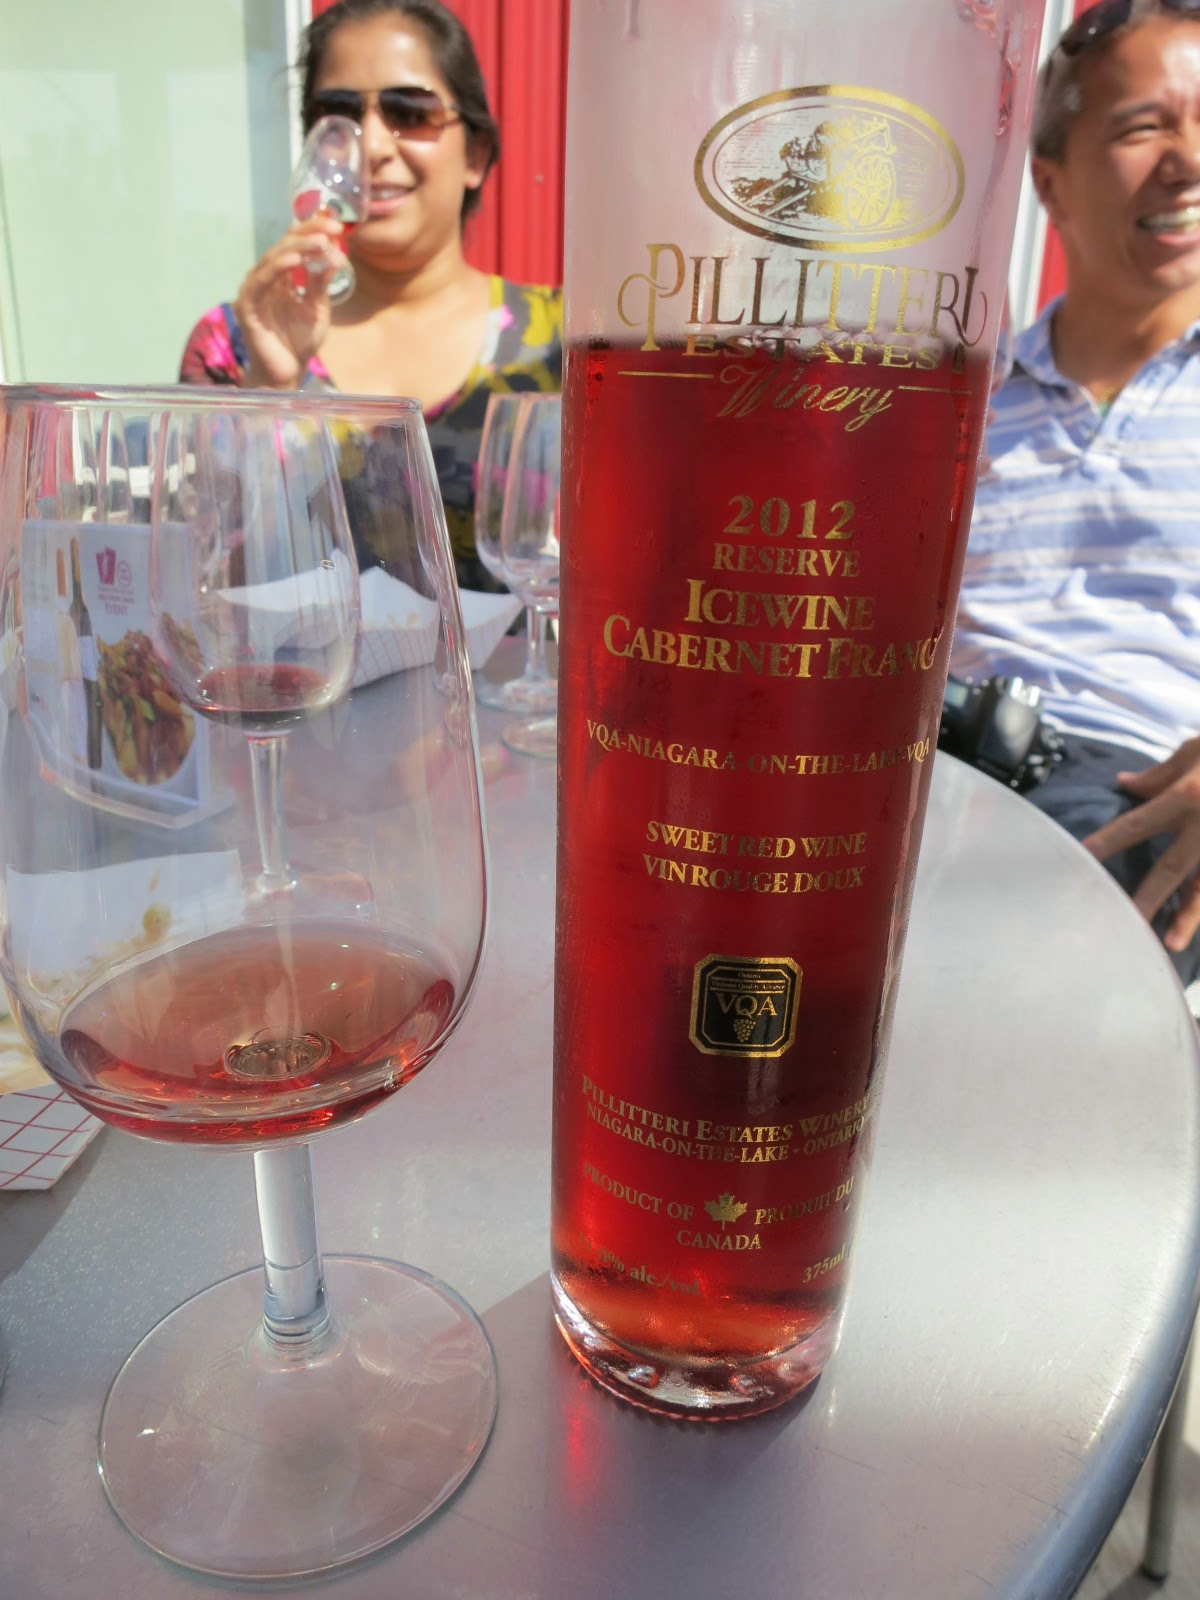 Wine Review of 2012 Pillitteri Reserve Cabernet Franc Icewine from VQA Niagara, Peninsula